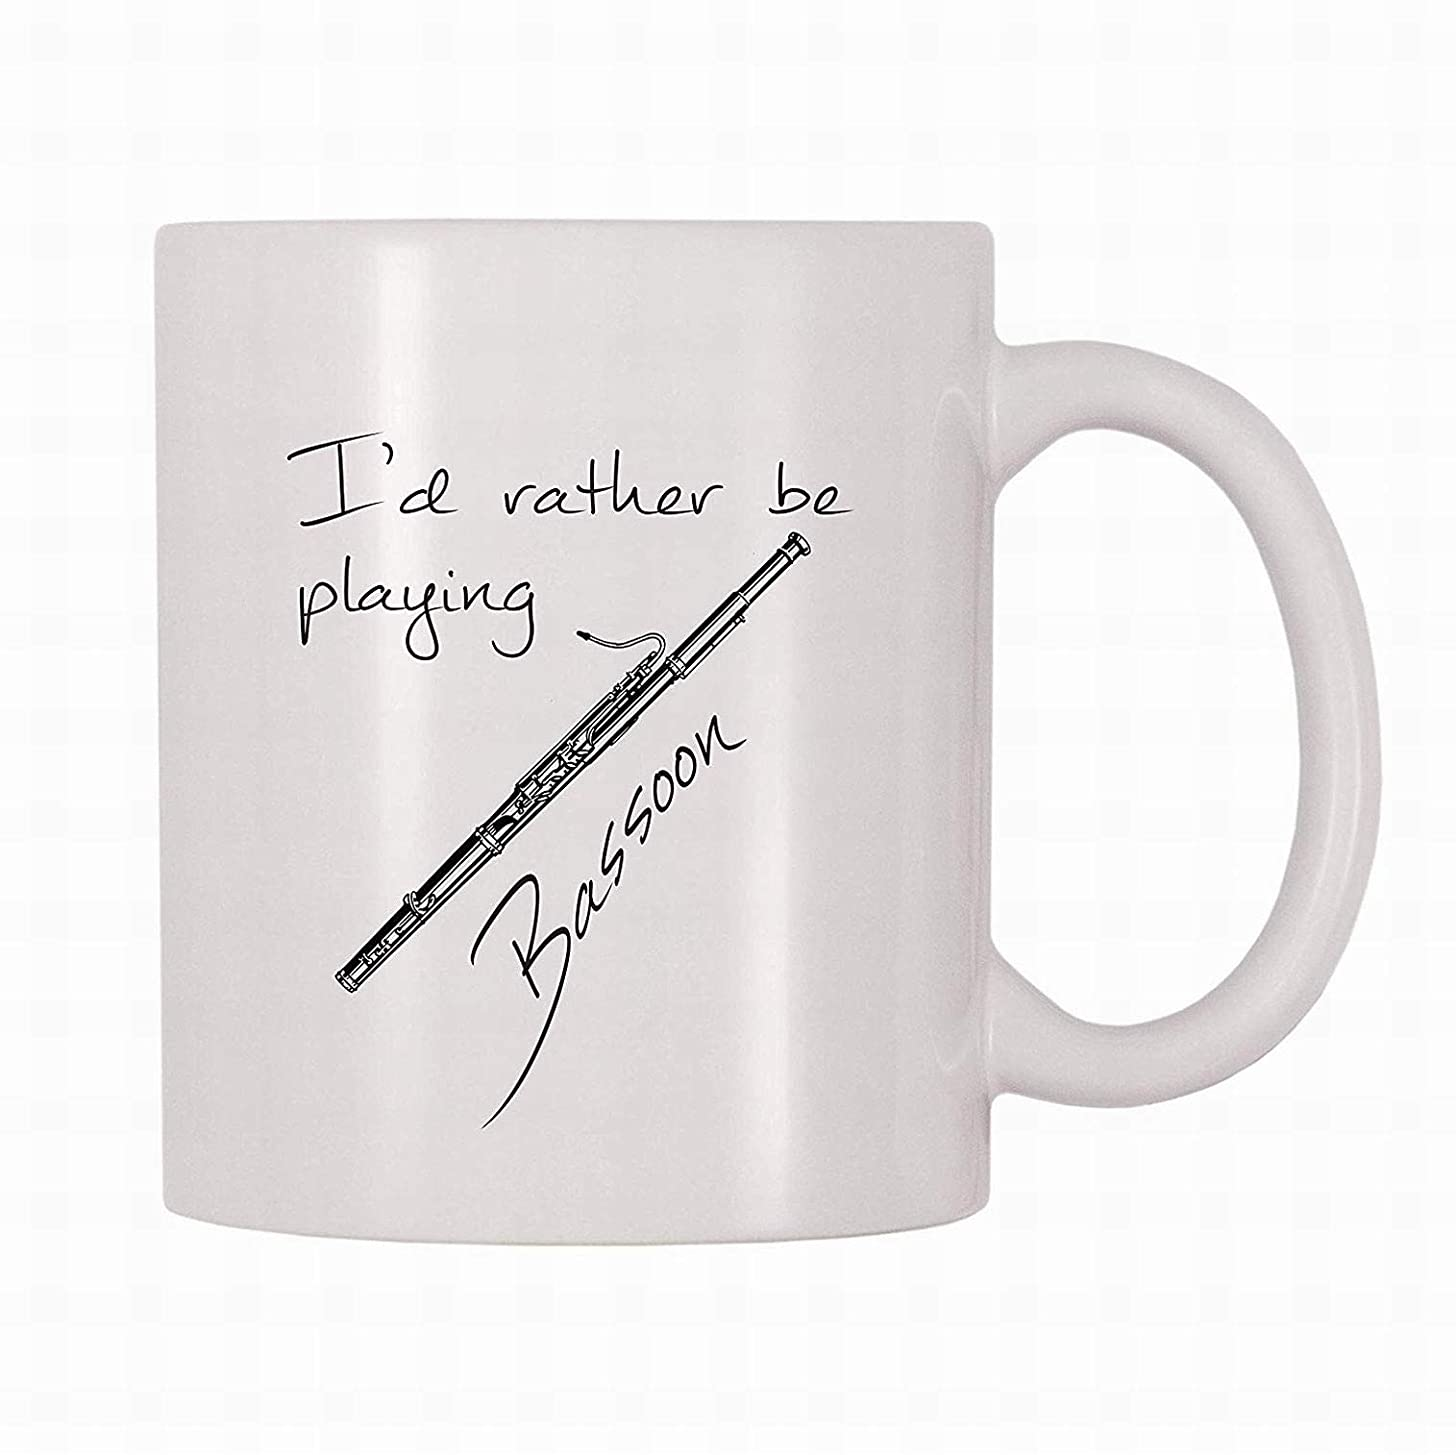 Funny Cute Gift Coffee Mug 11 OZ Id Rather Be Playing Bassoon Water Milk Tea Mug Cup for Home Family Office by LoMall